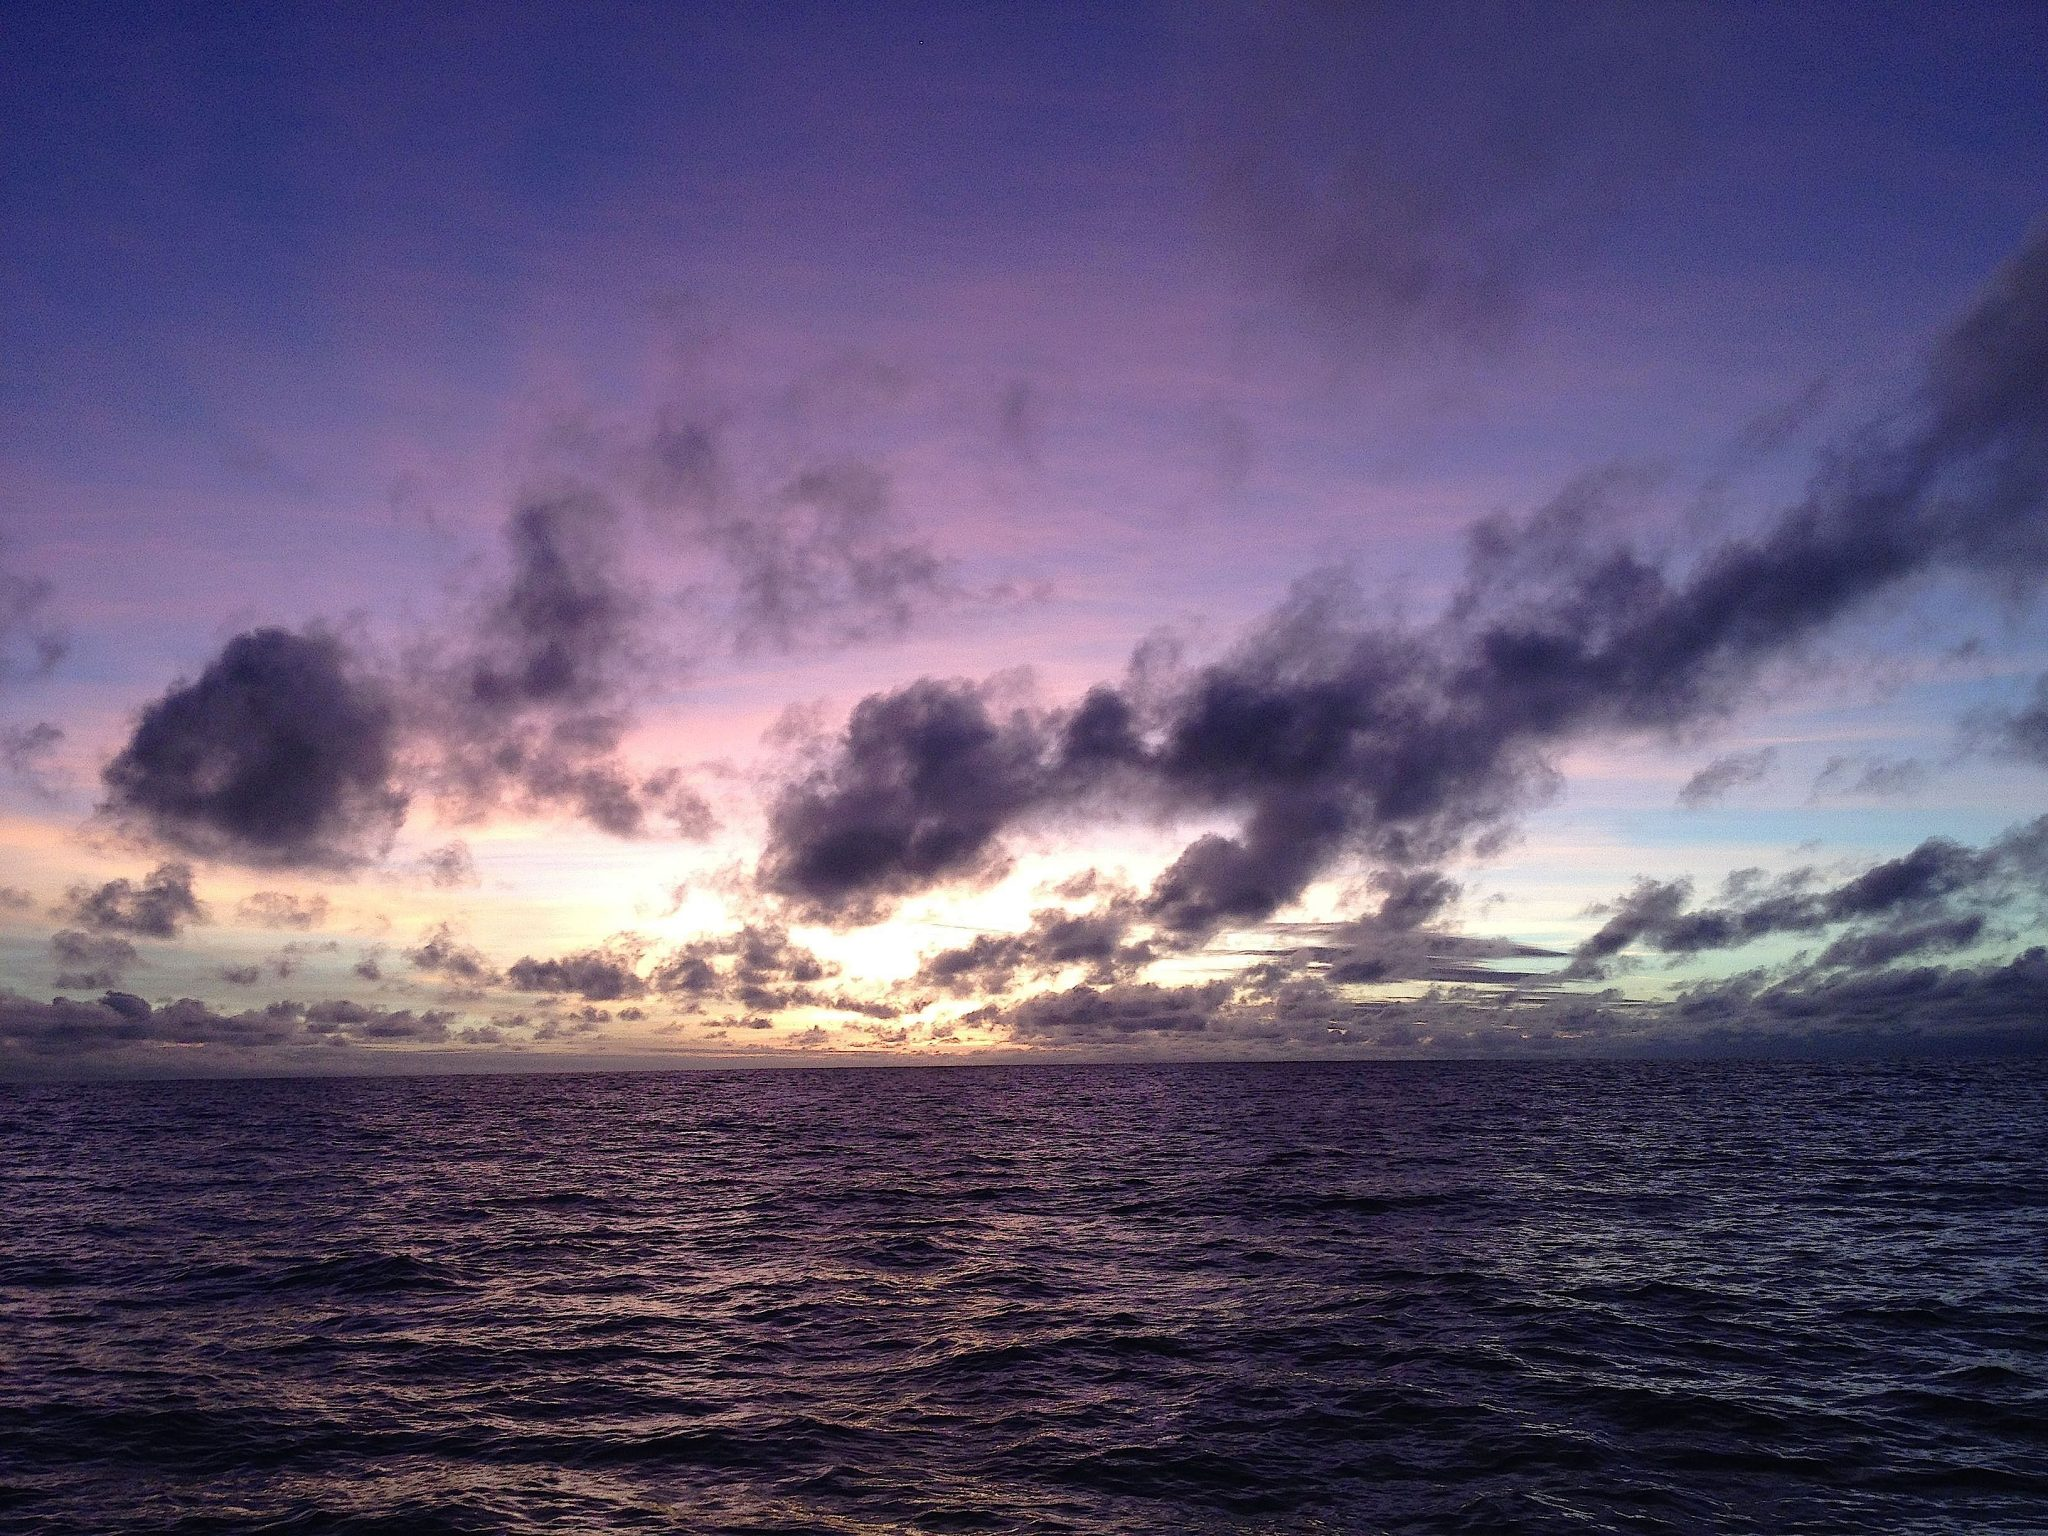 7. I took this photo a few minutes after the previous photo about a minute after the sun dipped below the horizon, changing the sky's hue to vilot. Joyful was sailing westbound from Bora Bora to Vava'u, Tonga